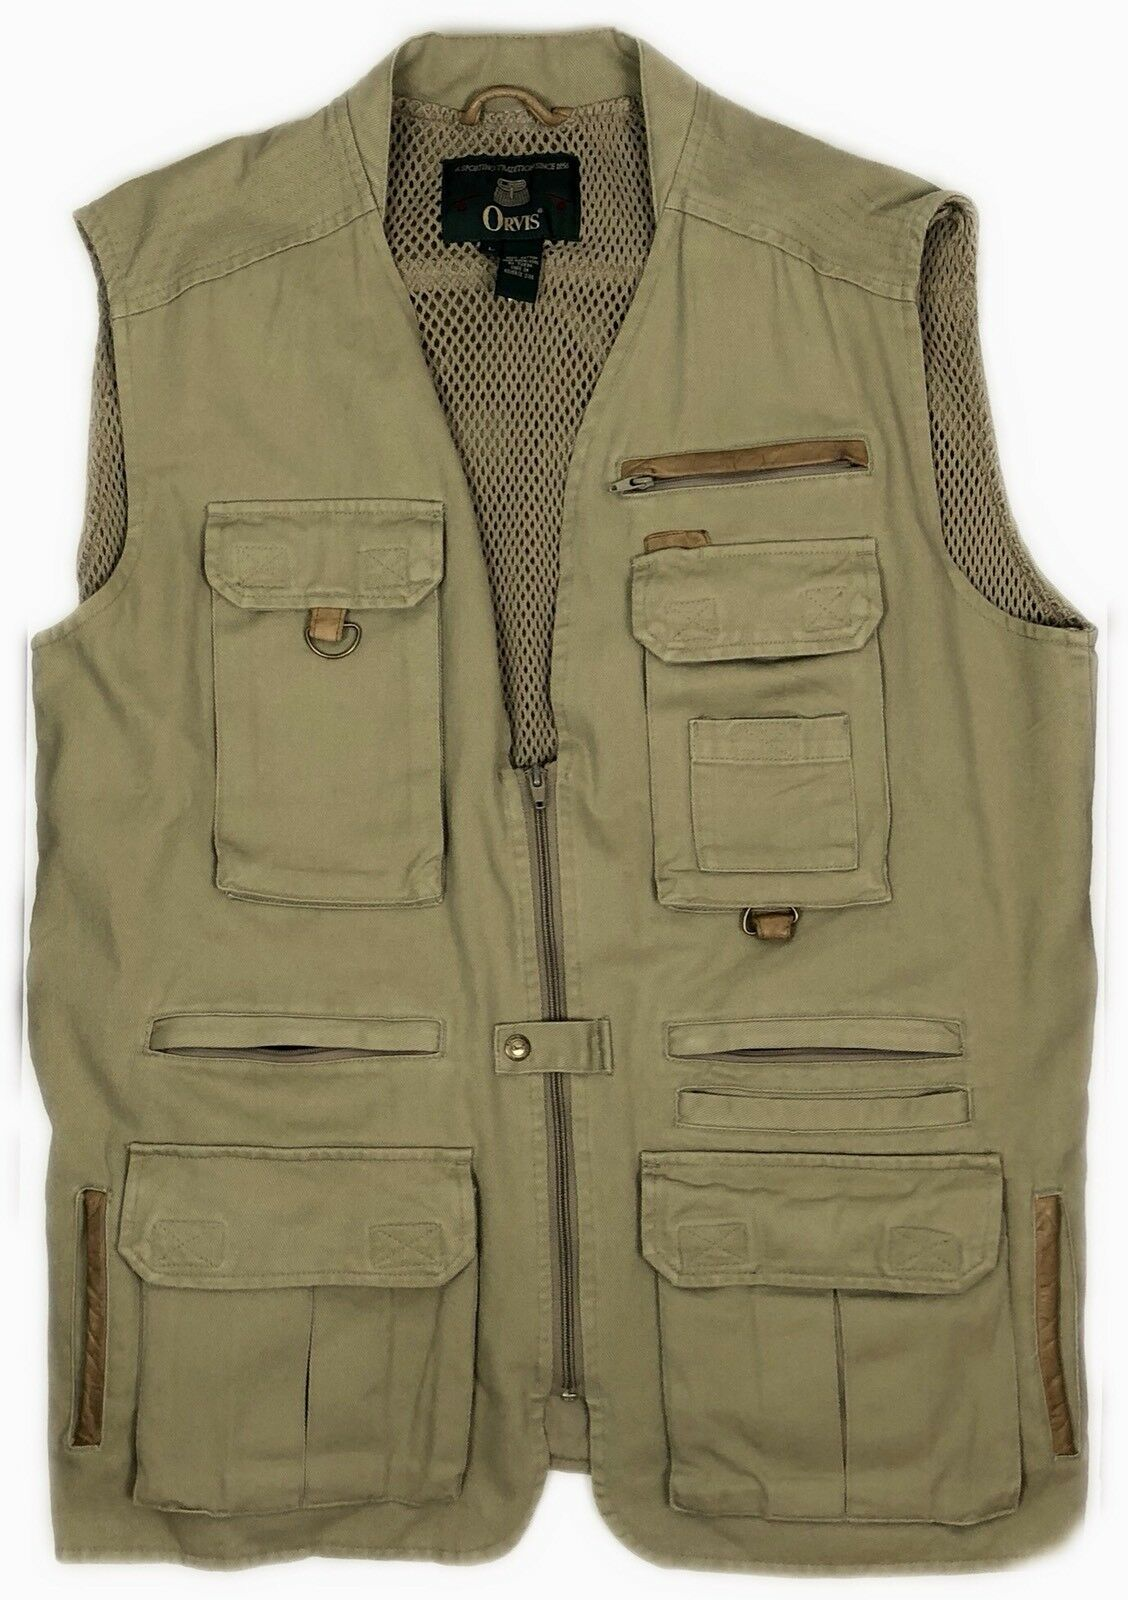 ORVIS Large 100% Cotton Leather Trim Hunting Fly Fishing Tactical Vented Vest